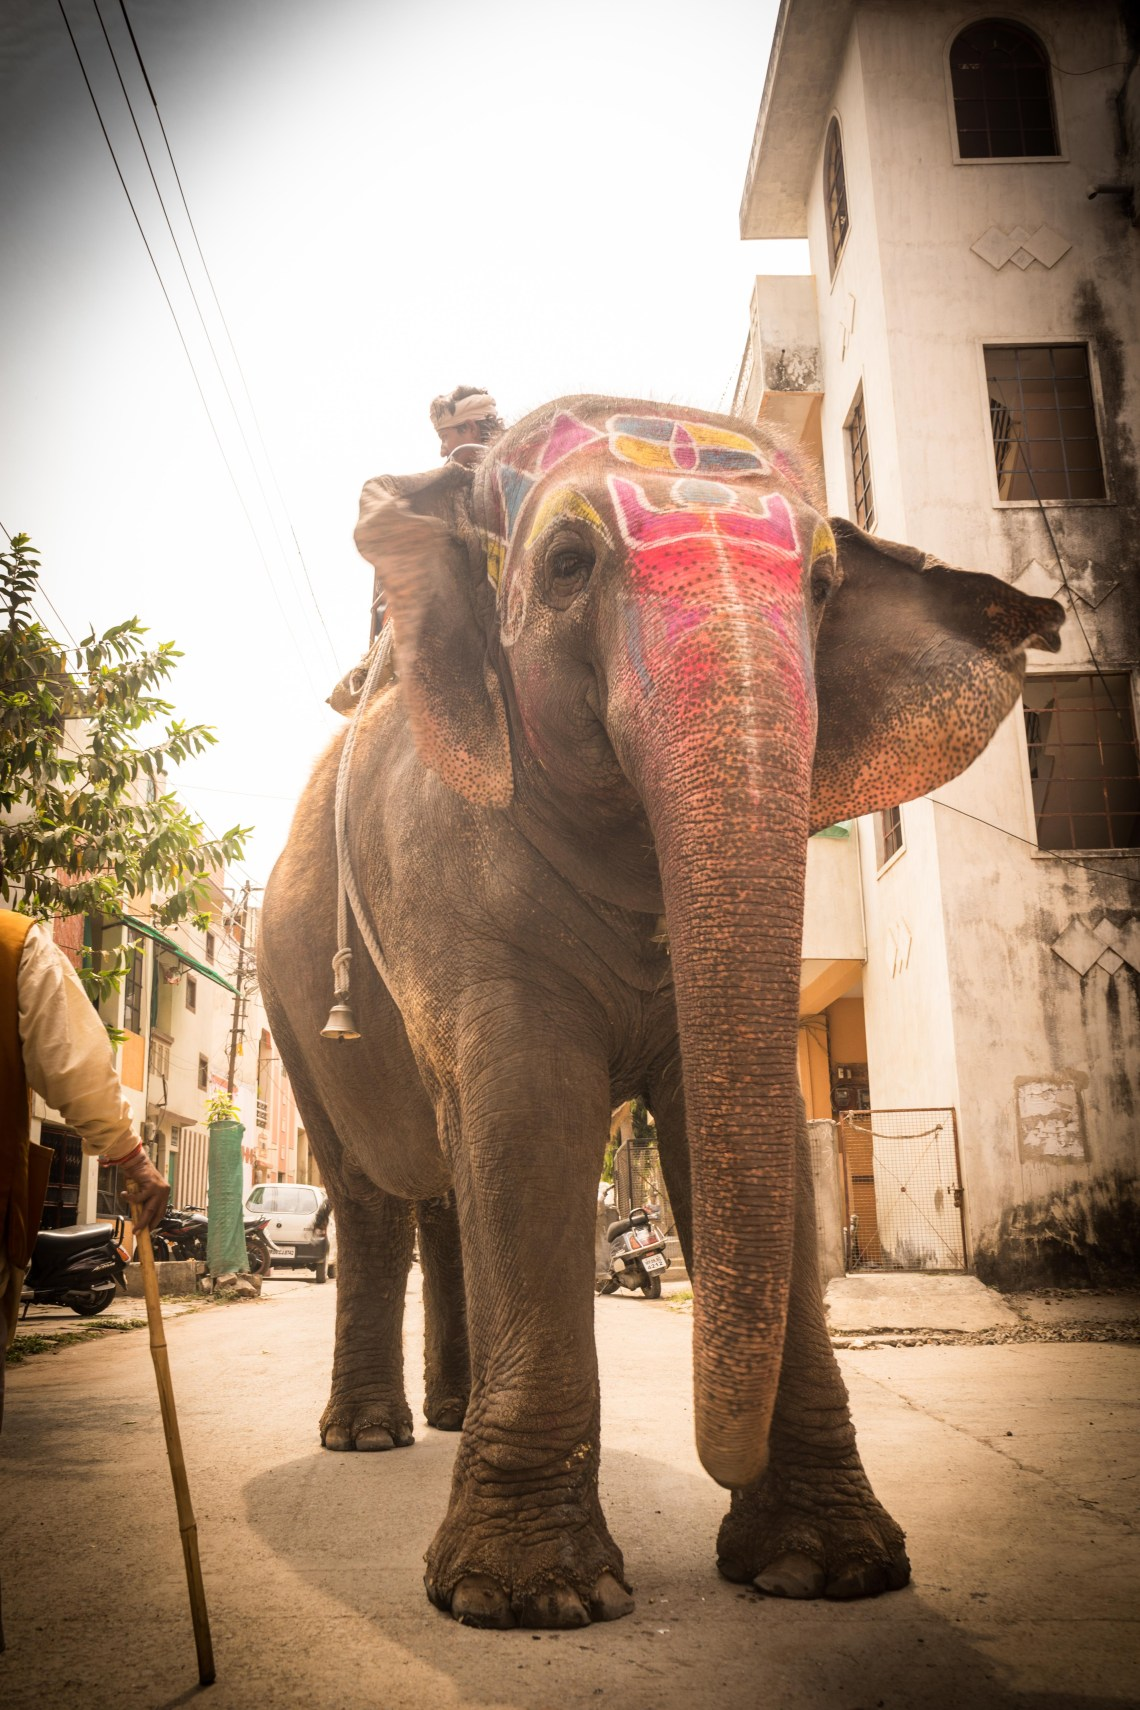 An elephant as seen roaming around the streets of Indore, India